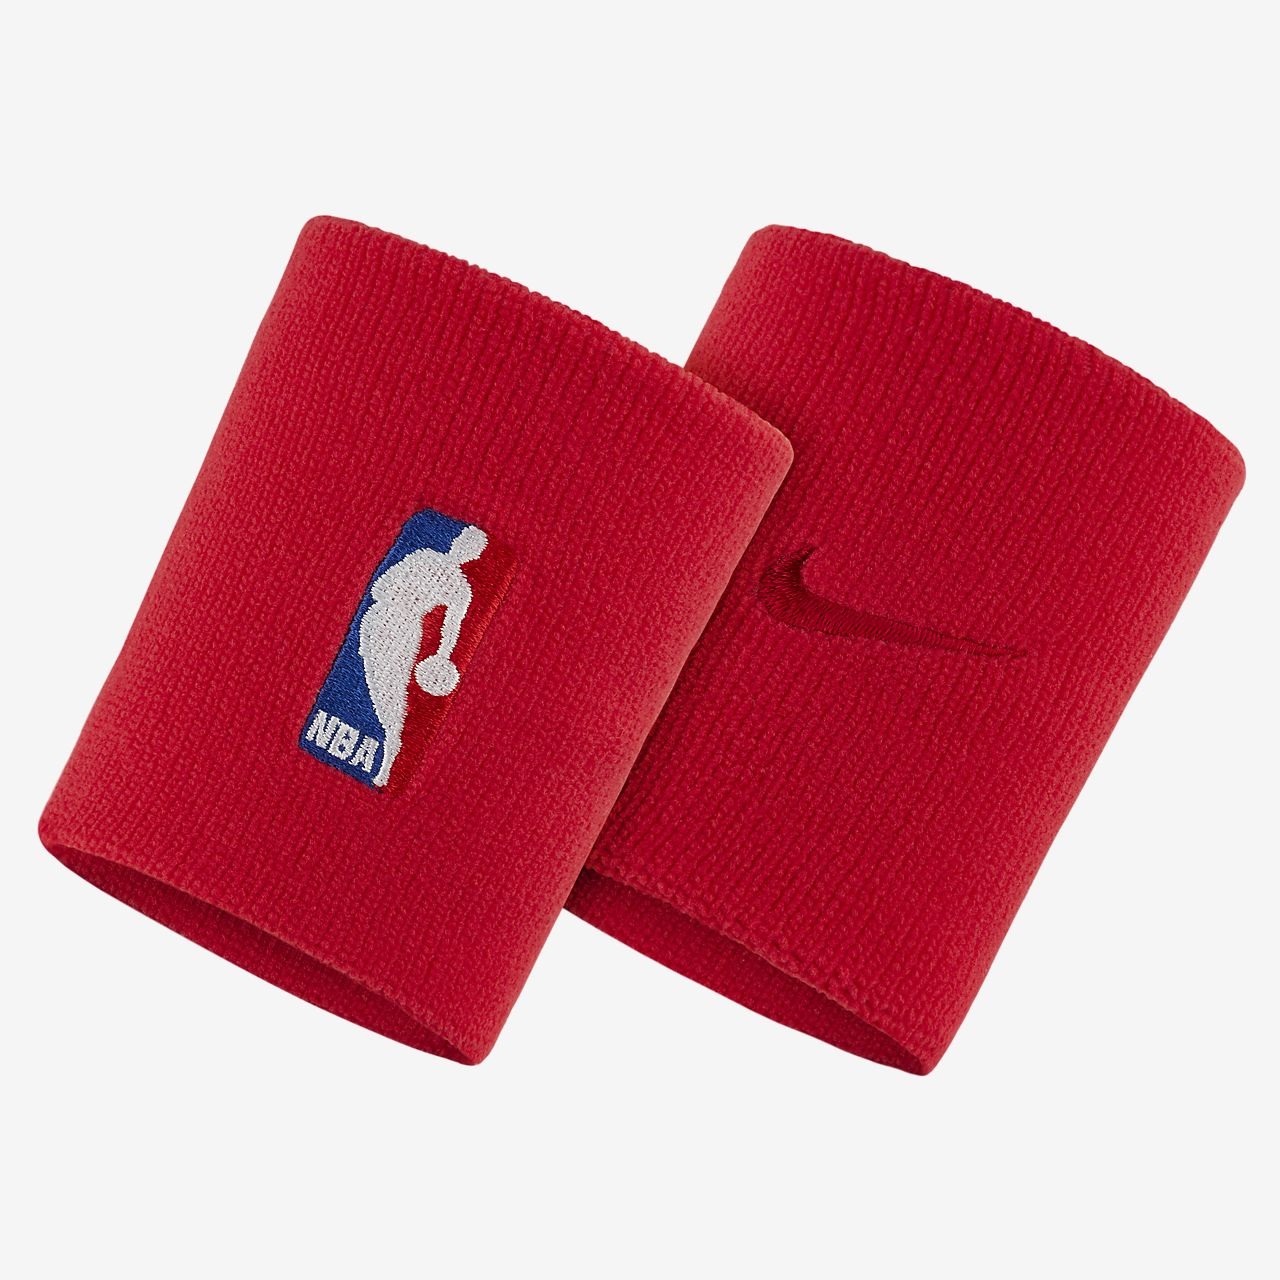 NBA-basketsvettband Nike Elite